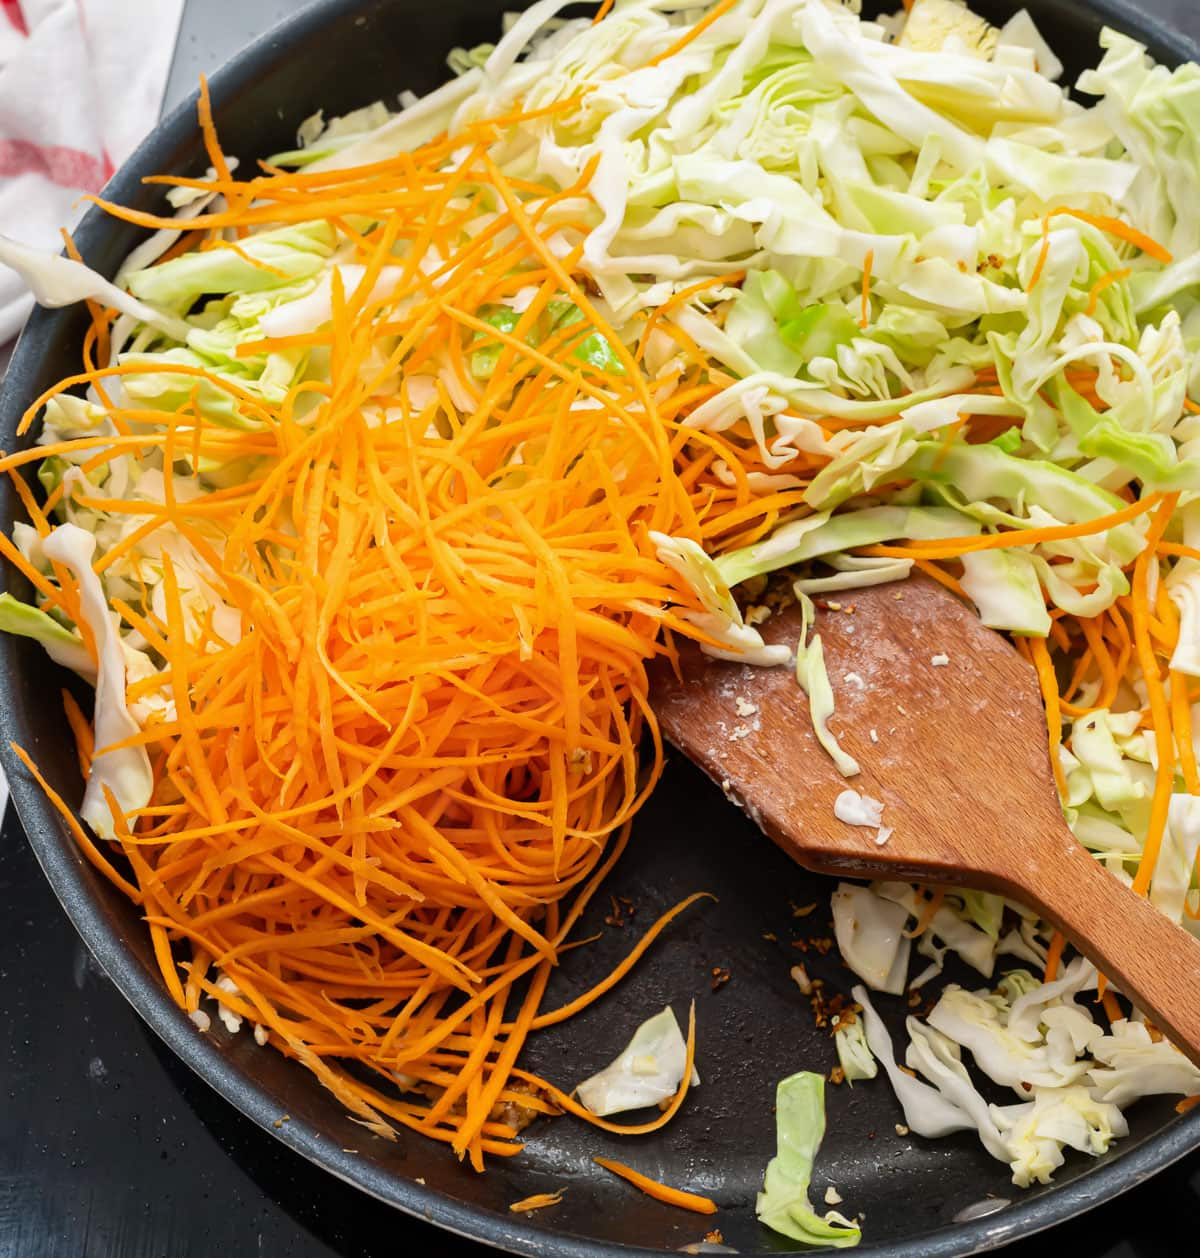 Carrots and cabbage in a skillet